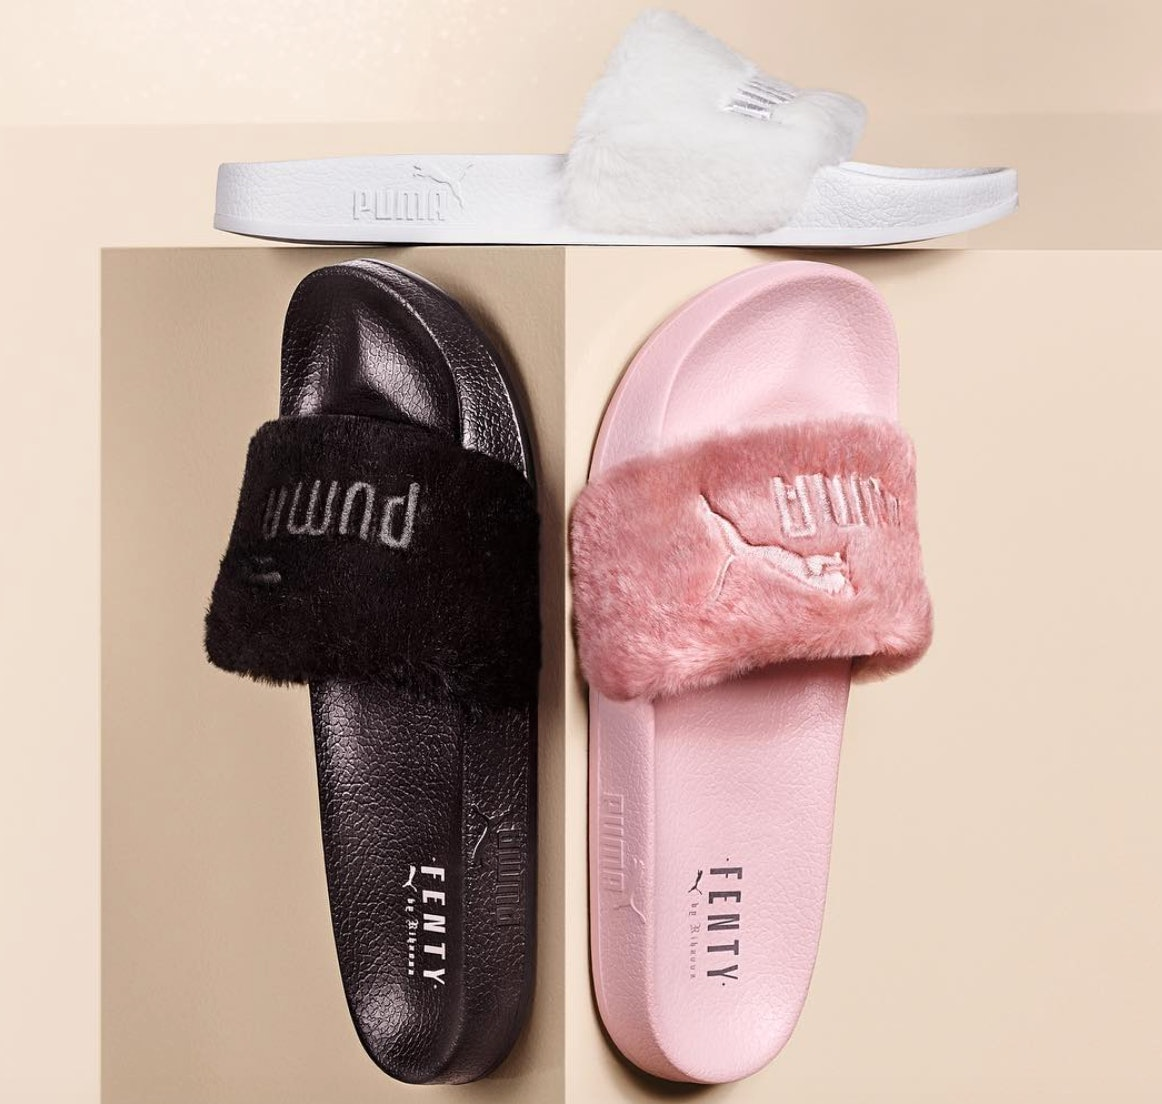 huge selection of 09572 f3959 Are Rihanna's Black, White, & Shell Fur Puma Slides Being ...